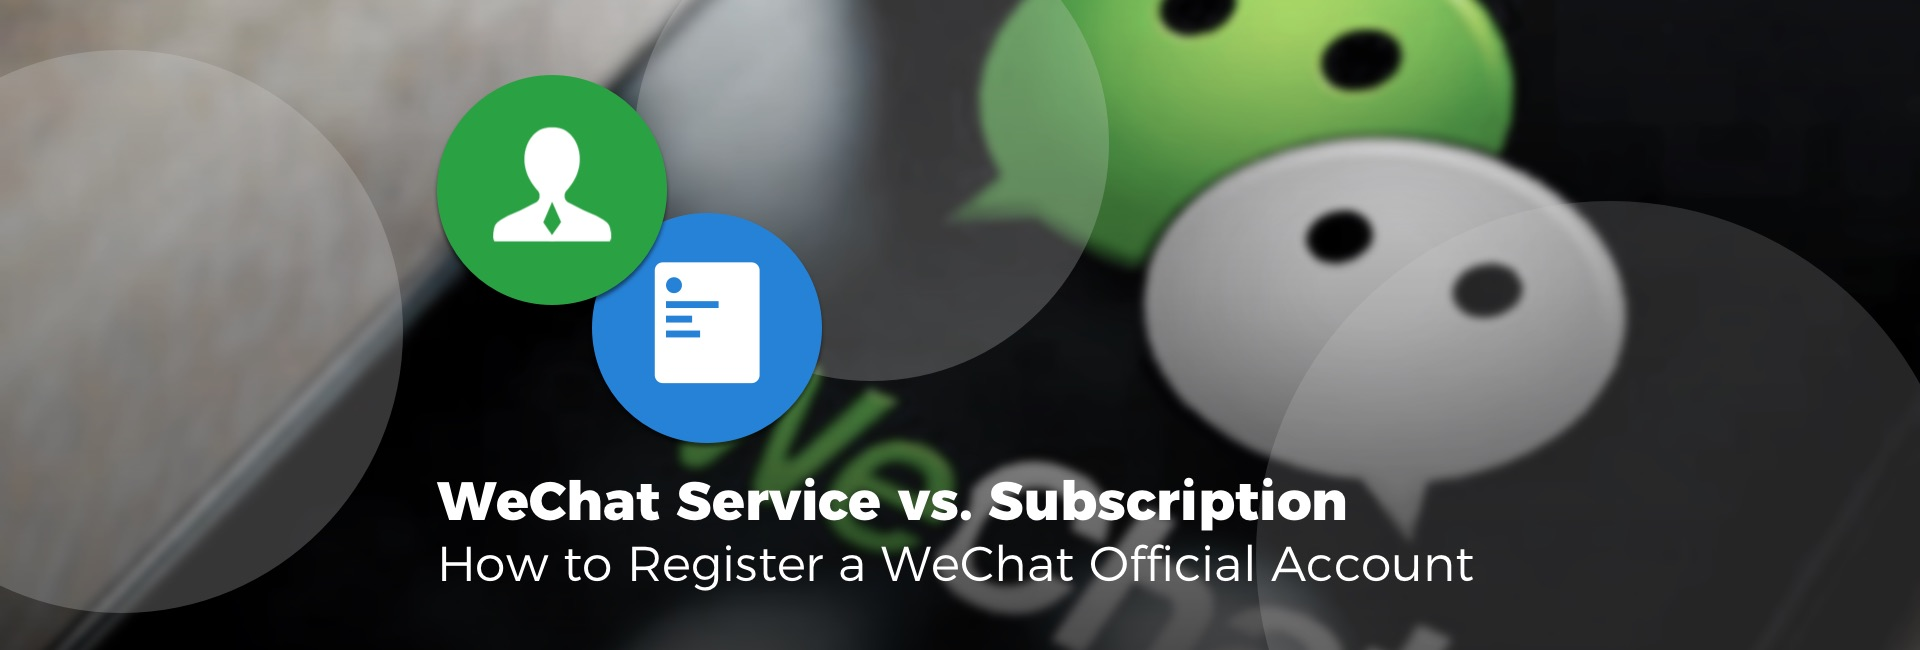 How to find wechat official account